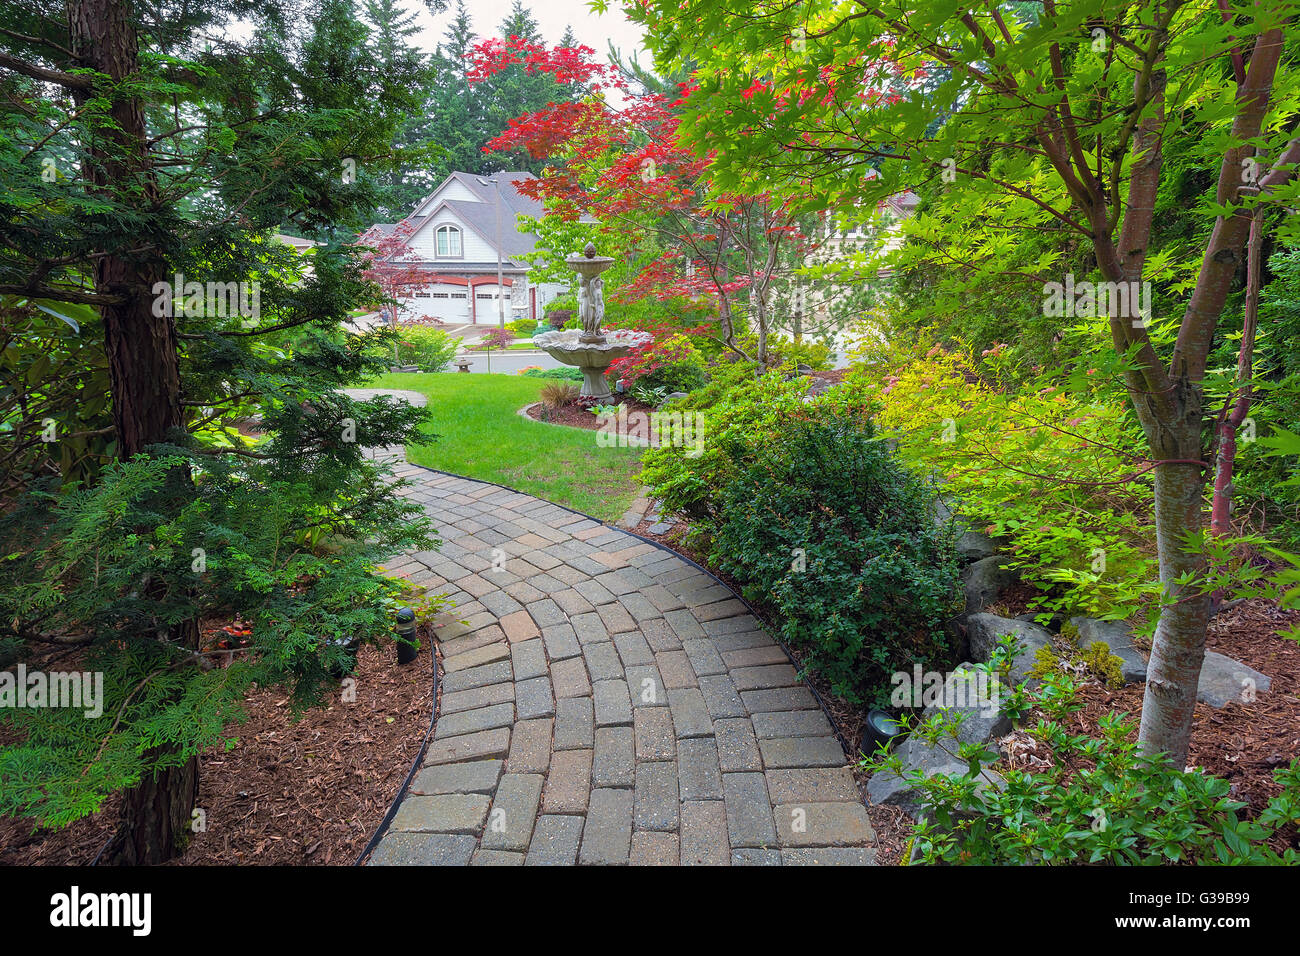 Garden Brick Paver Path In Frontyard With Water Fountain Plants